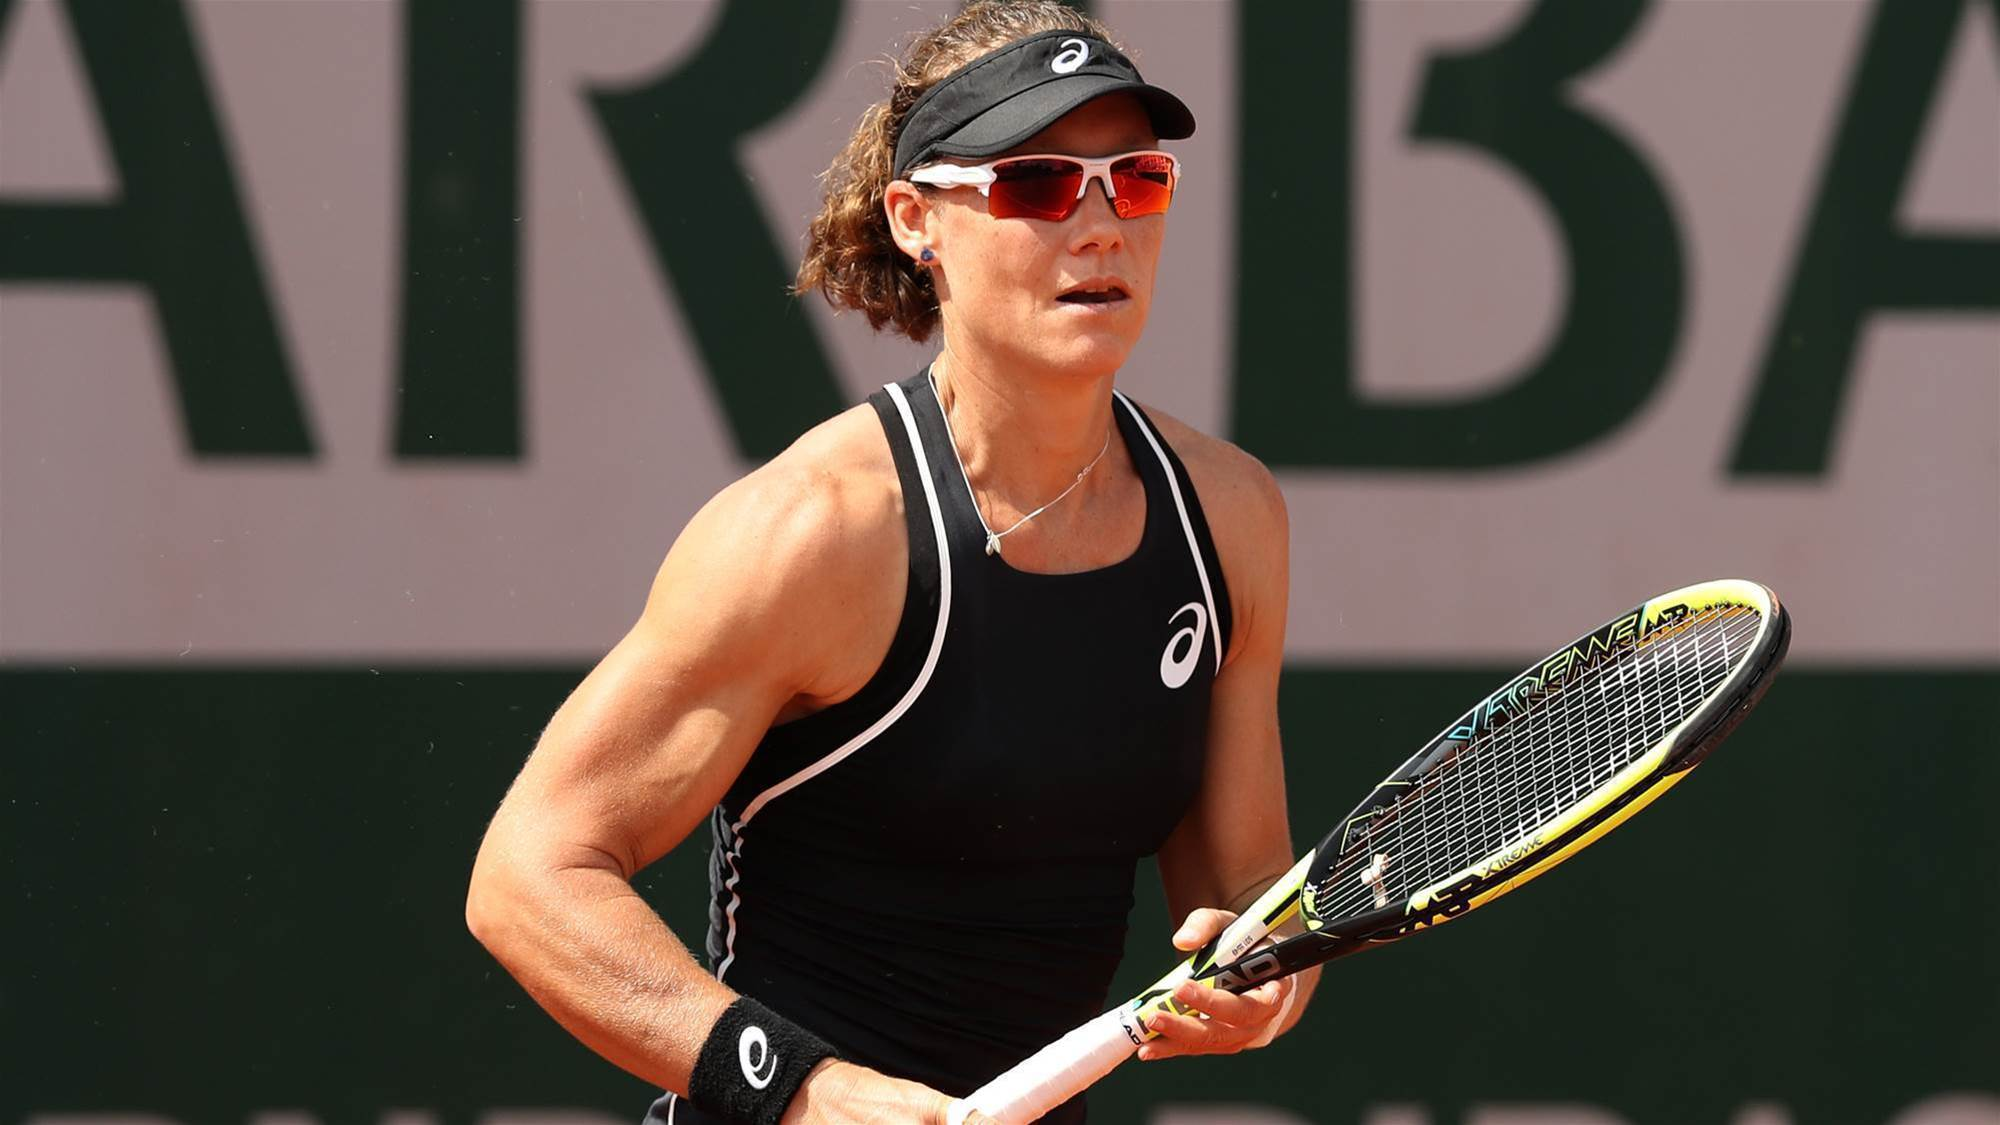 Stosur and Gavrilova through to third round